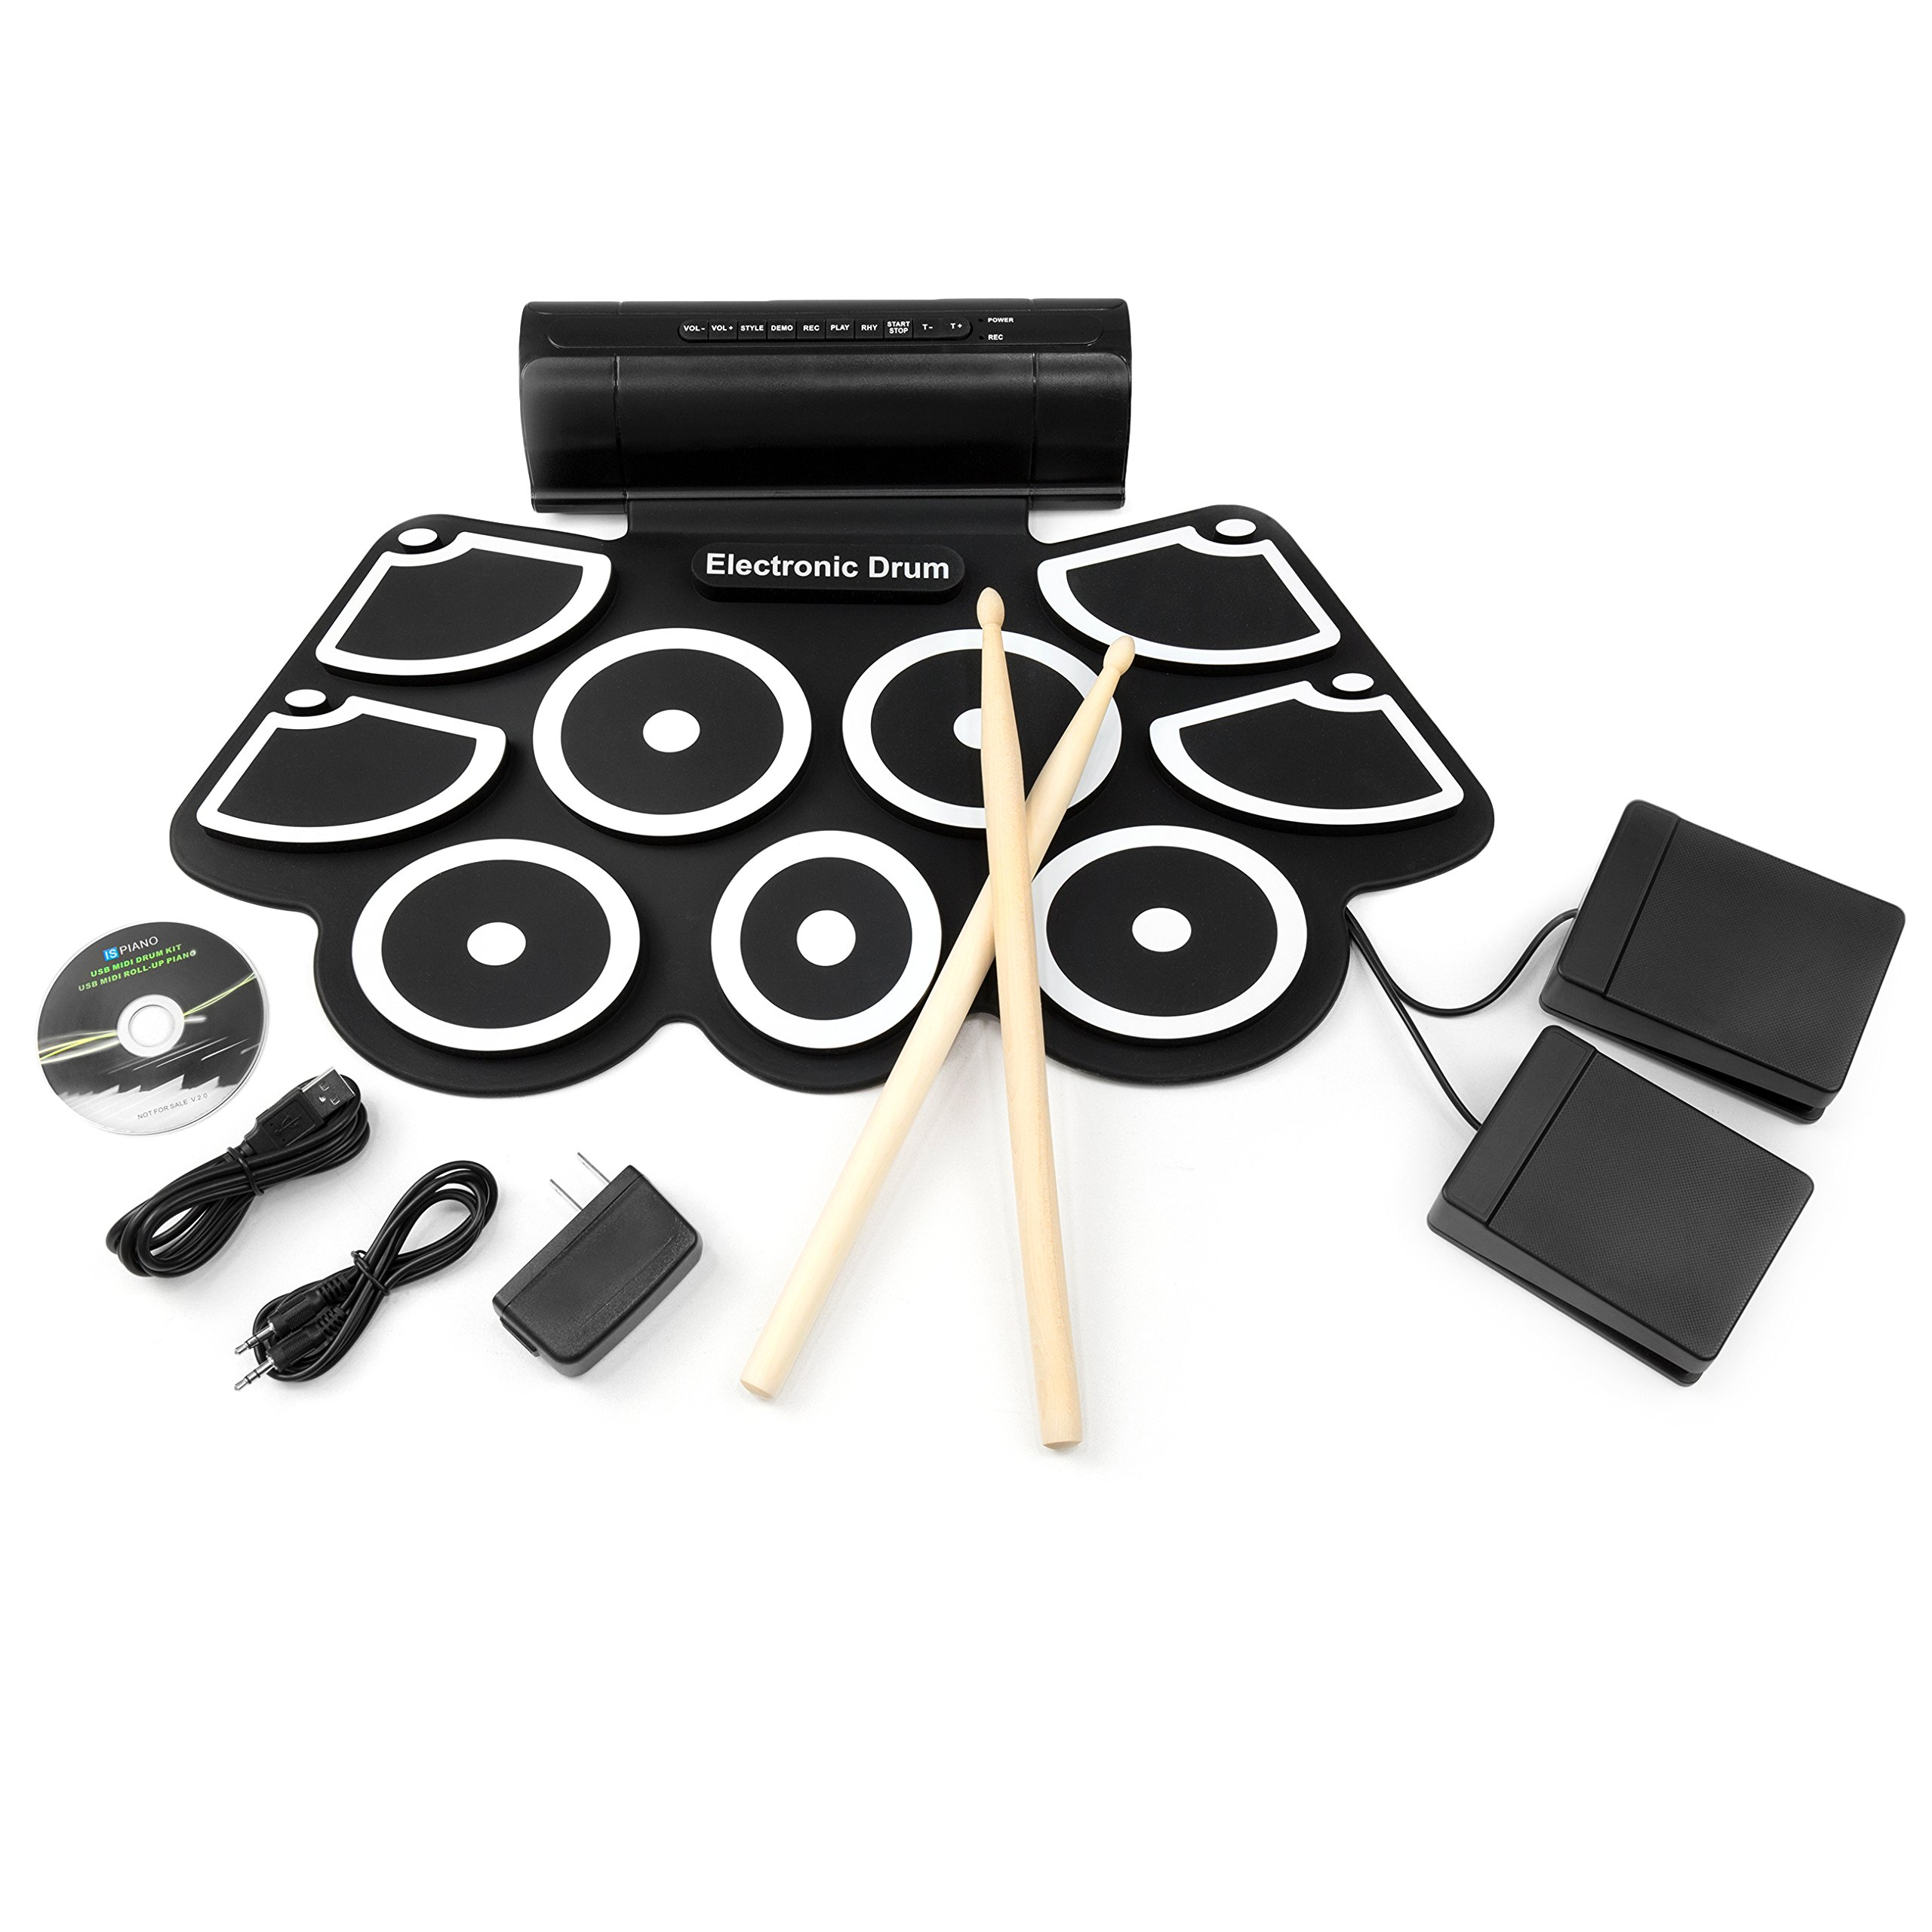 Best Choice Products Foldable Electronic Drum Set Kit, Roll-Up Drum Pads with USB MIDI, Built-in Speakers, Foot Pedals, Drumsticks Included - Black by Best Choice Products